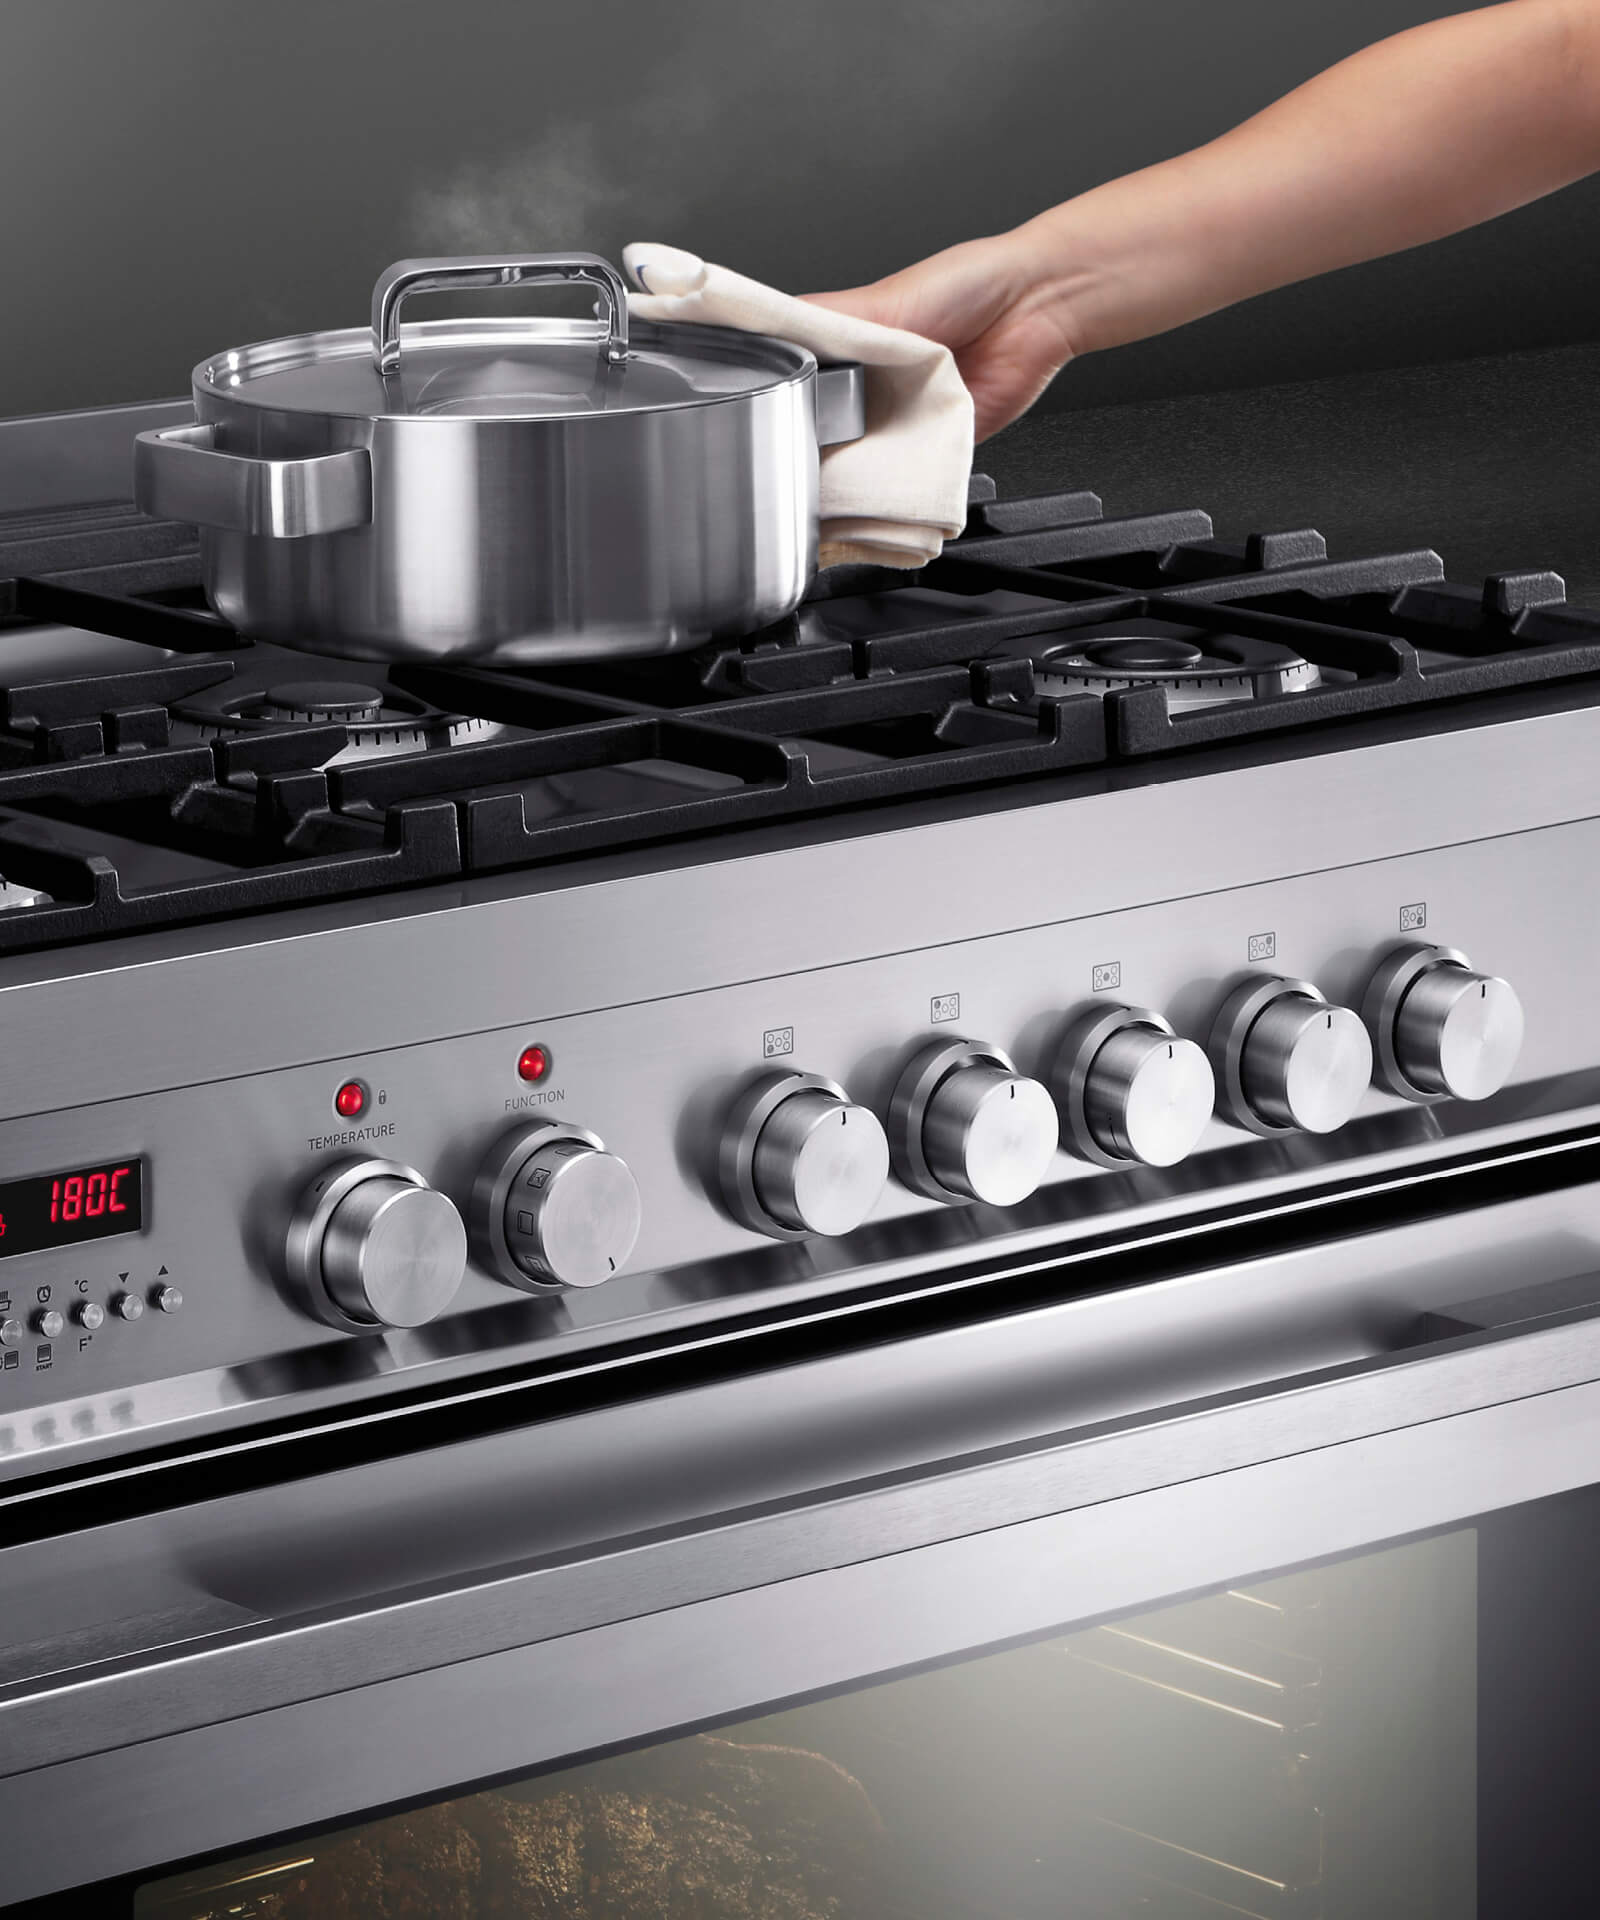 Or90sdbgfpx1 90cm Pyrolytic Freestanding Dual Fuel Cooker